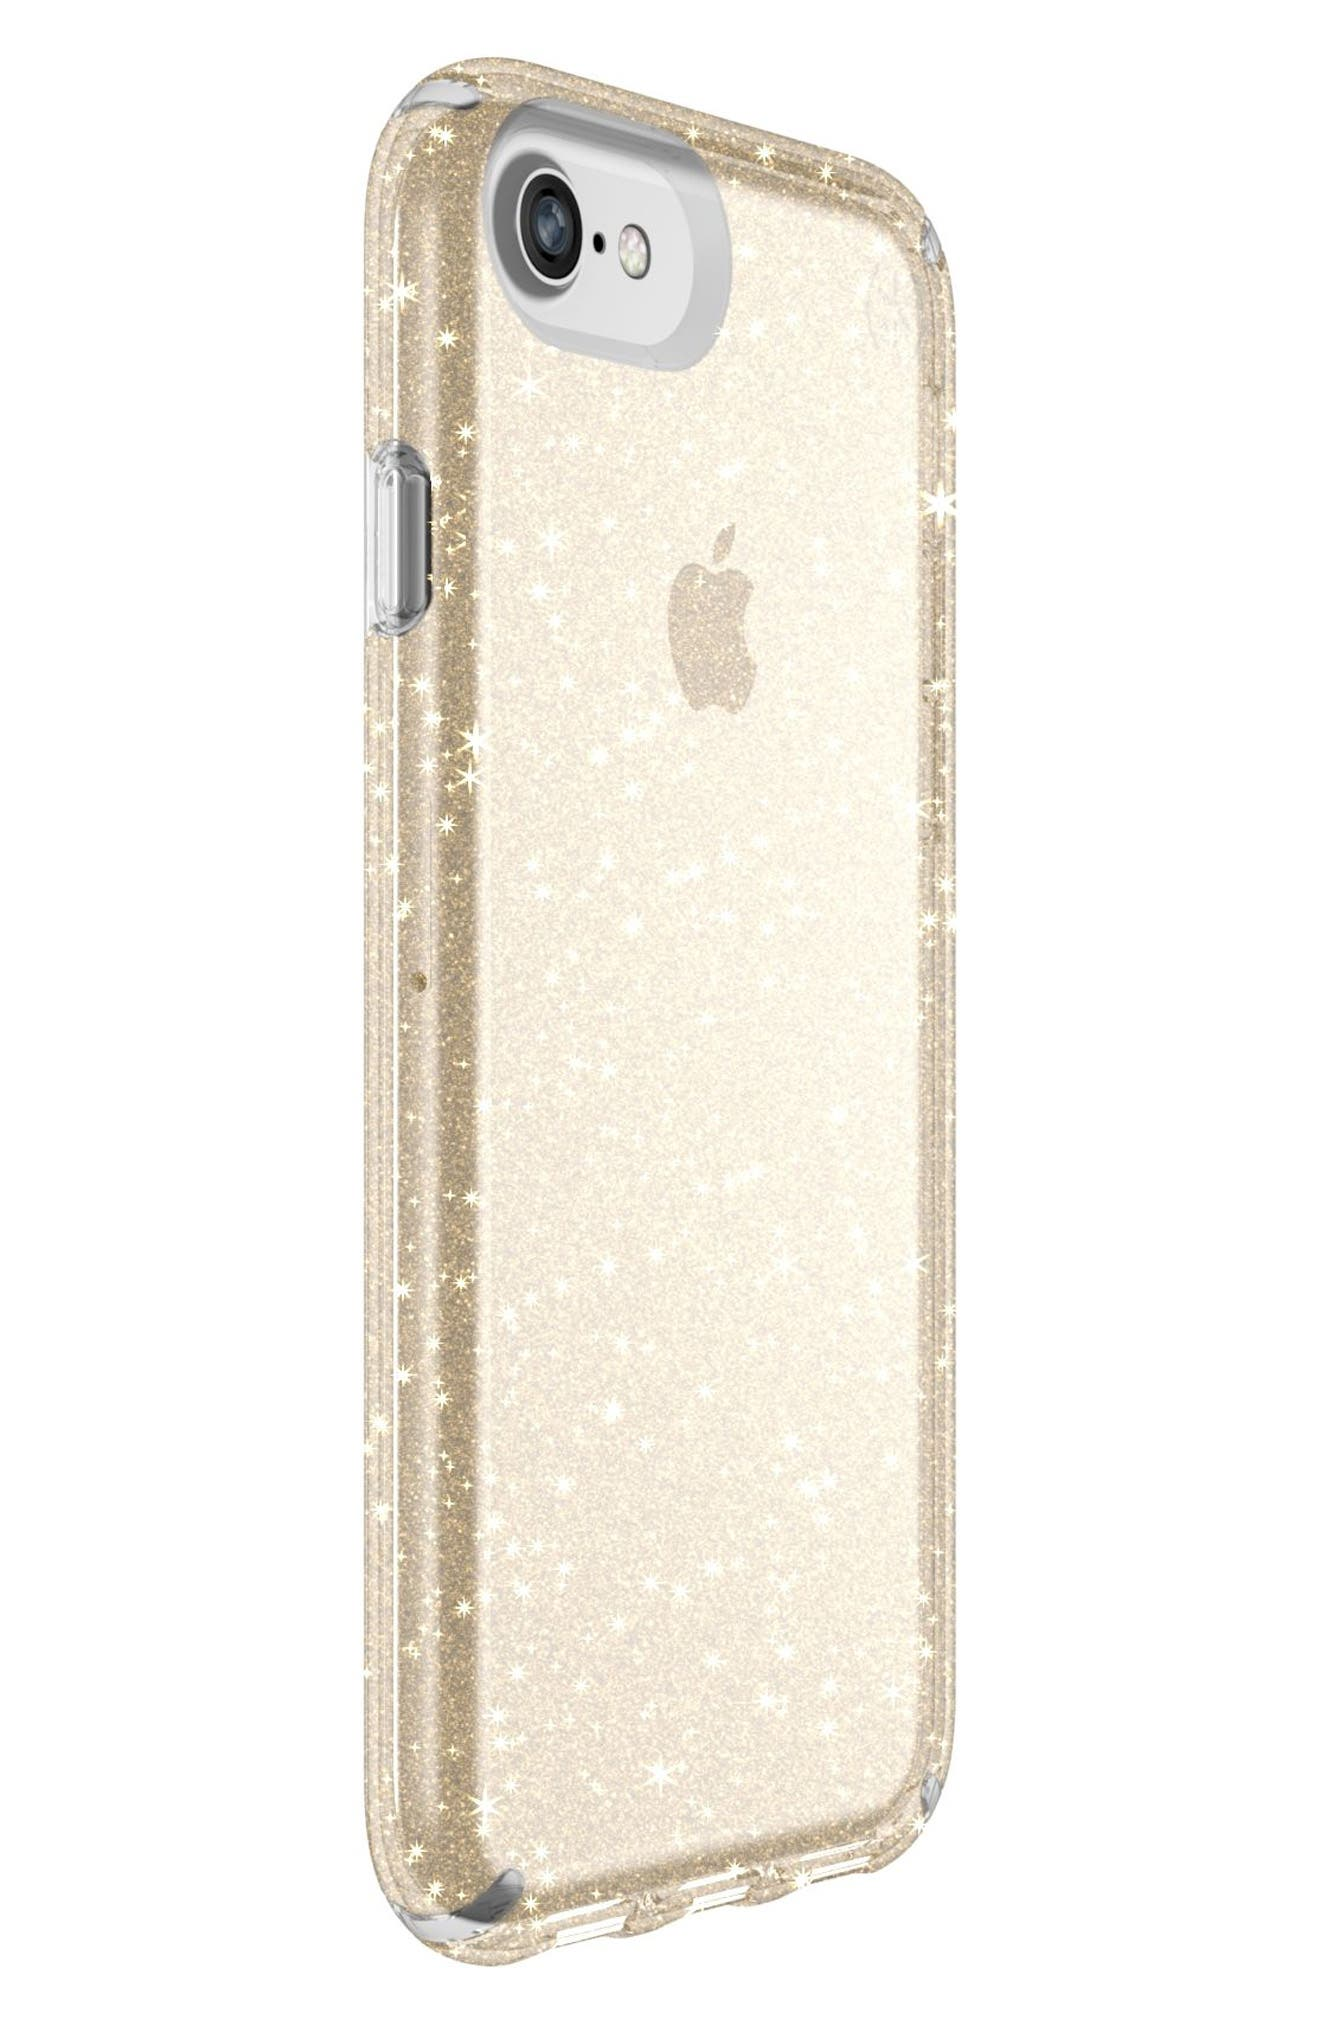 iPhone 6/6s/7/8 Case,                             Alternate thumbnail 2, color,                             Clear With Gold Glitter/ Clear